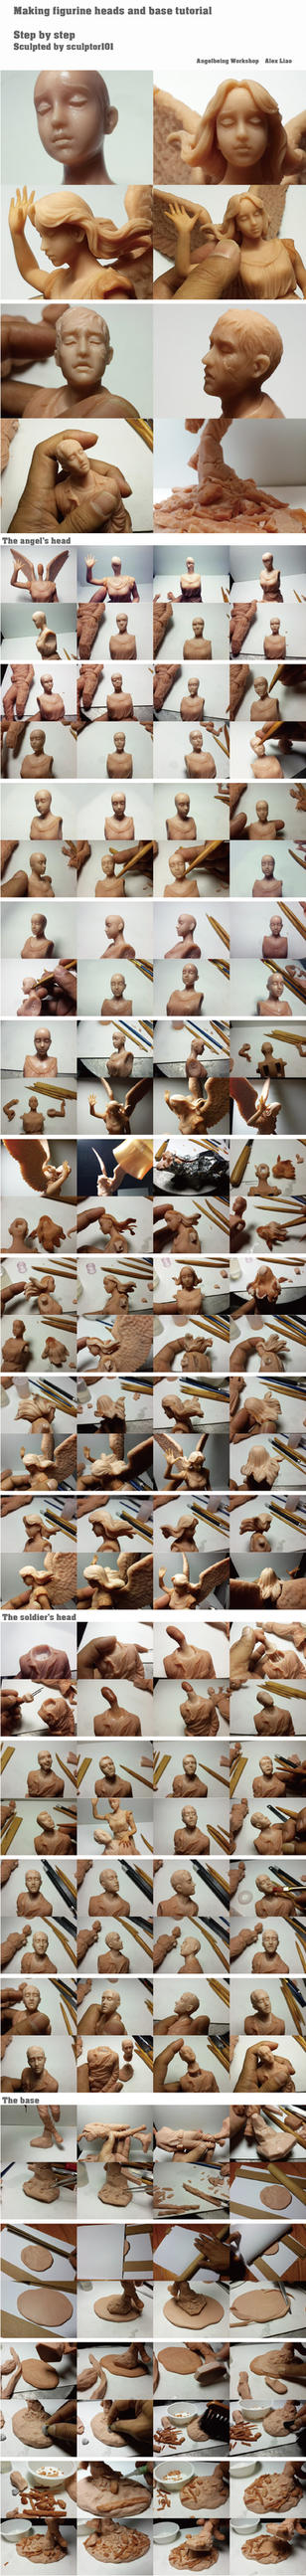 Figurine WIP\ tutorial part 6 heads + base final by sculptor101